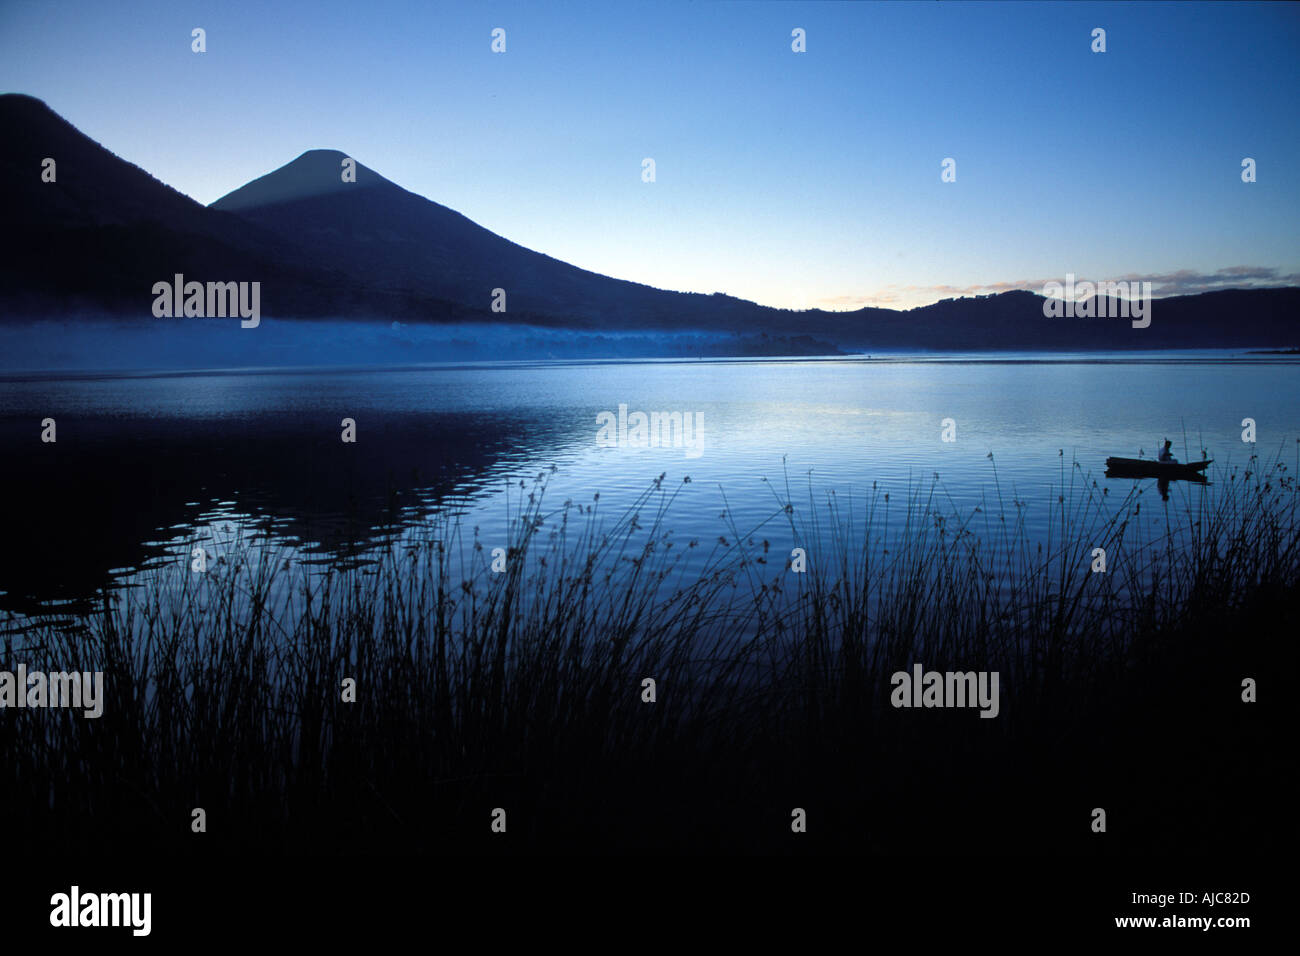 Santiago Atitlan sits beneath the towering peak of Toliman volcano Lone fisherman in canoe Lake Atitlan at dawn Guatemala - Stock Image